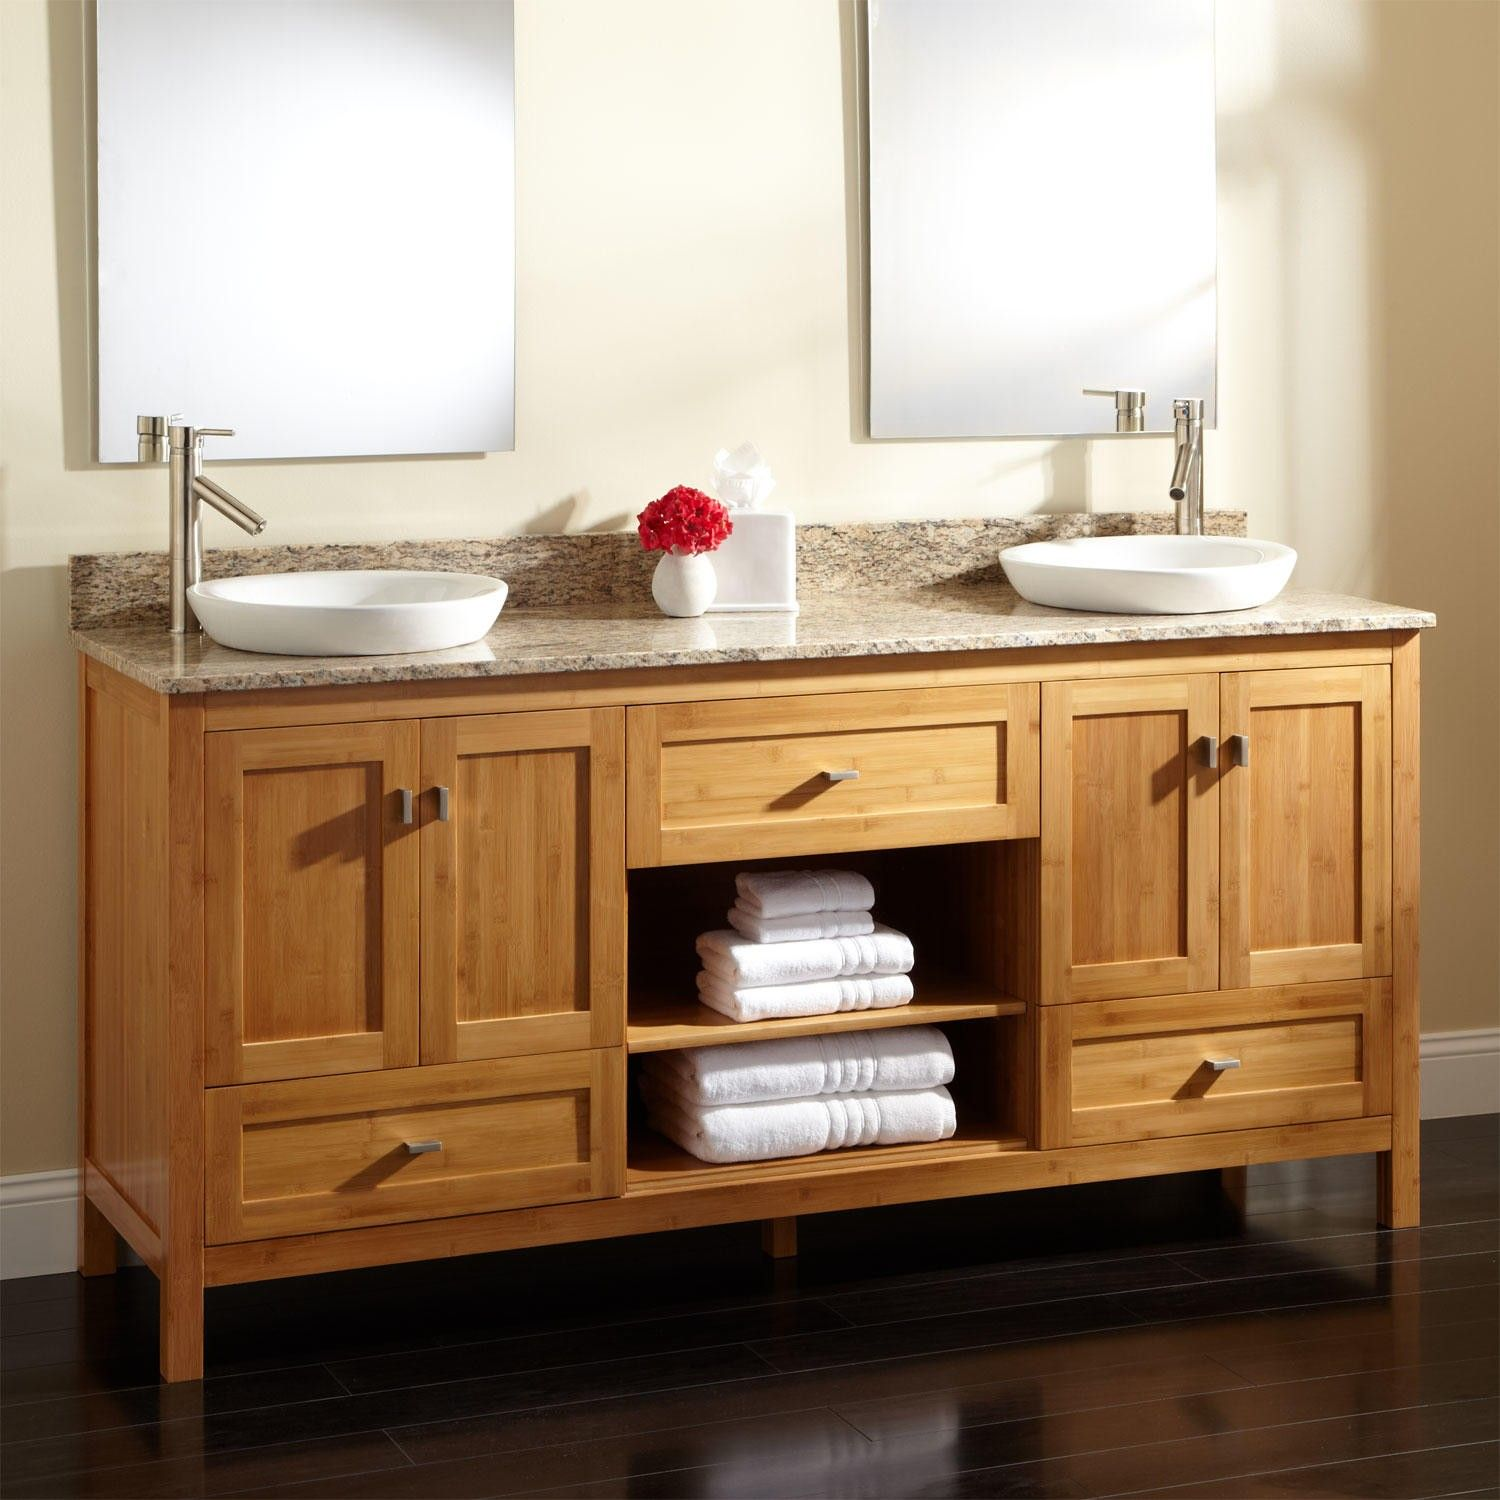 Bathroom Bathroom Vanity Cabinet Debgan Place A Towel And Two Large Mirrors  There Is Also A Place Of Flowers And A Box Of Kleenex Bathroom Vanity  Cabinet Is. 72  Alcott Bamboo Double Vanity for Semi Recessed Sinks   Bathroom